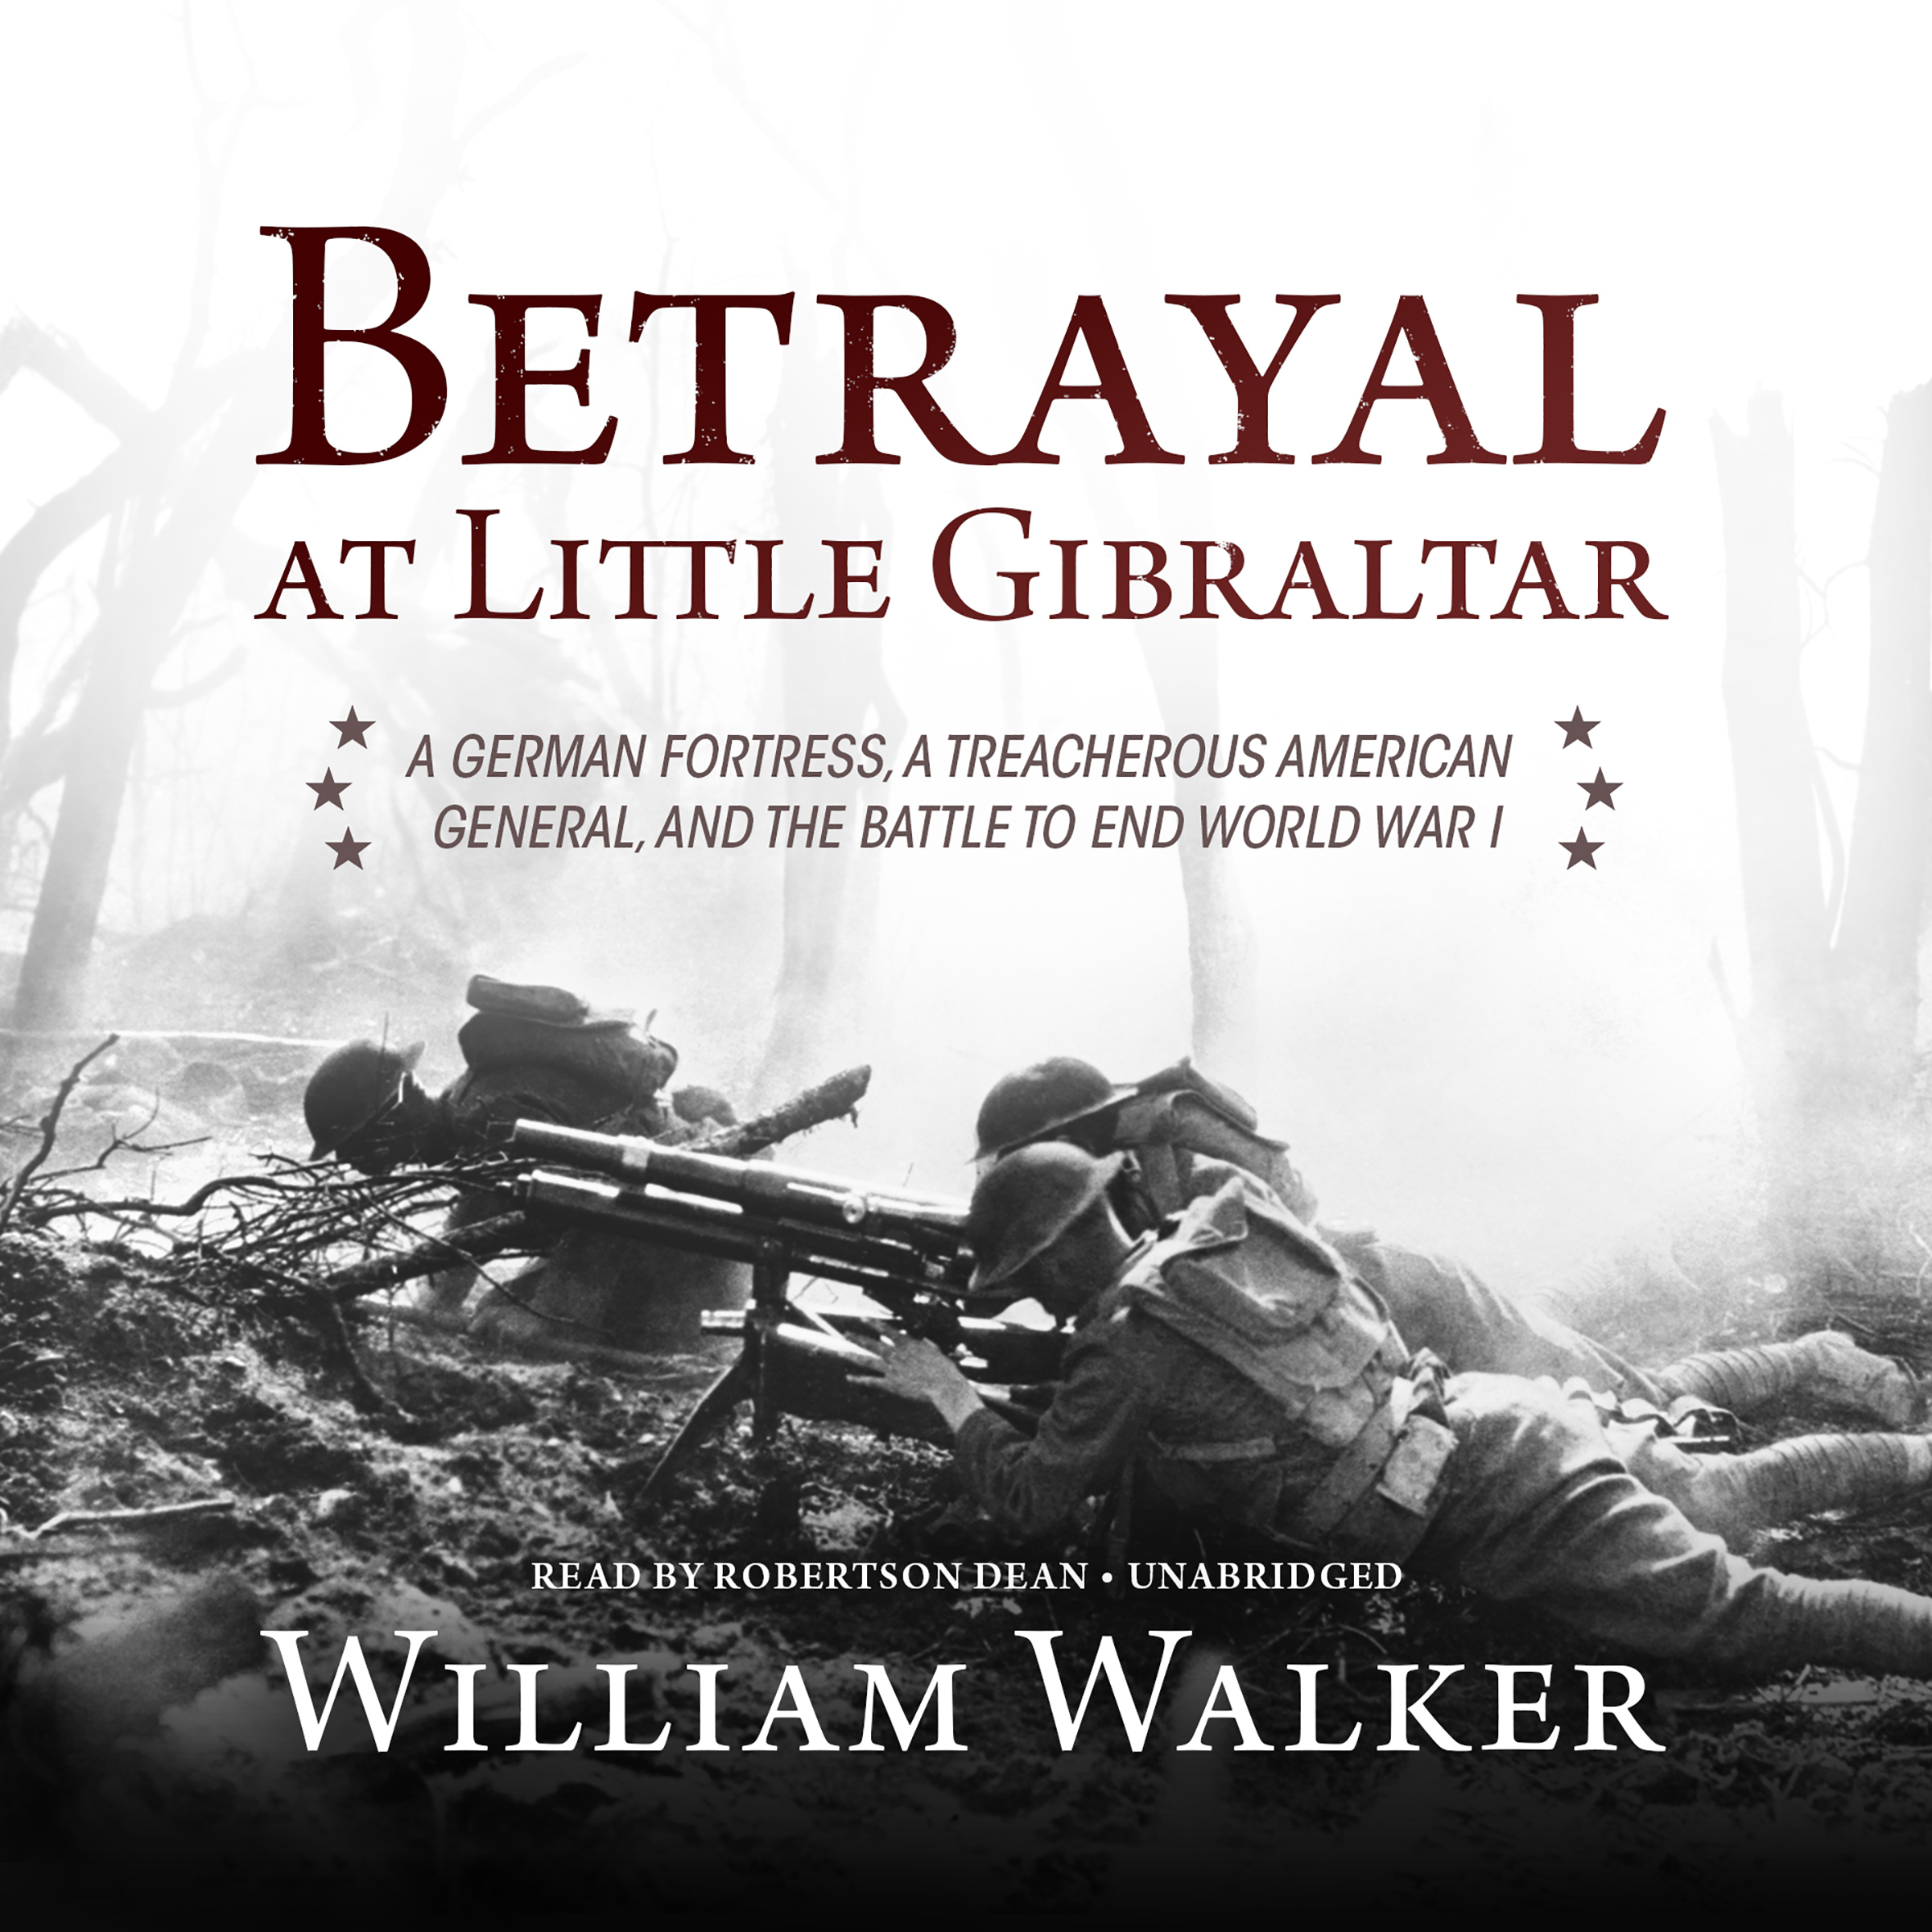 Printable Betrayal at Little Gibraltar: A German Fortress, a Treacherous American General, and the Battle to End World War I Audiobook Cover Art